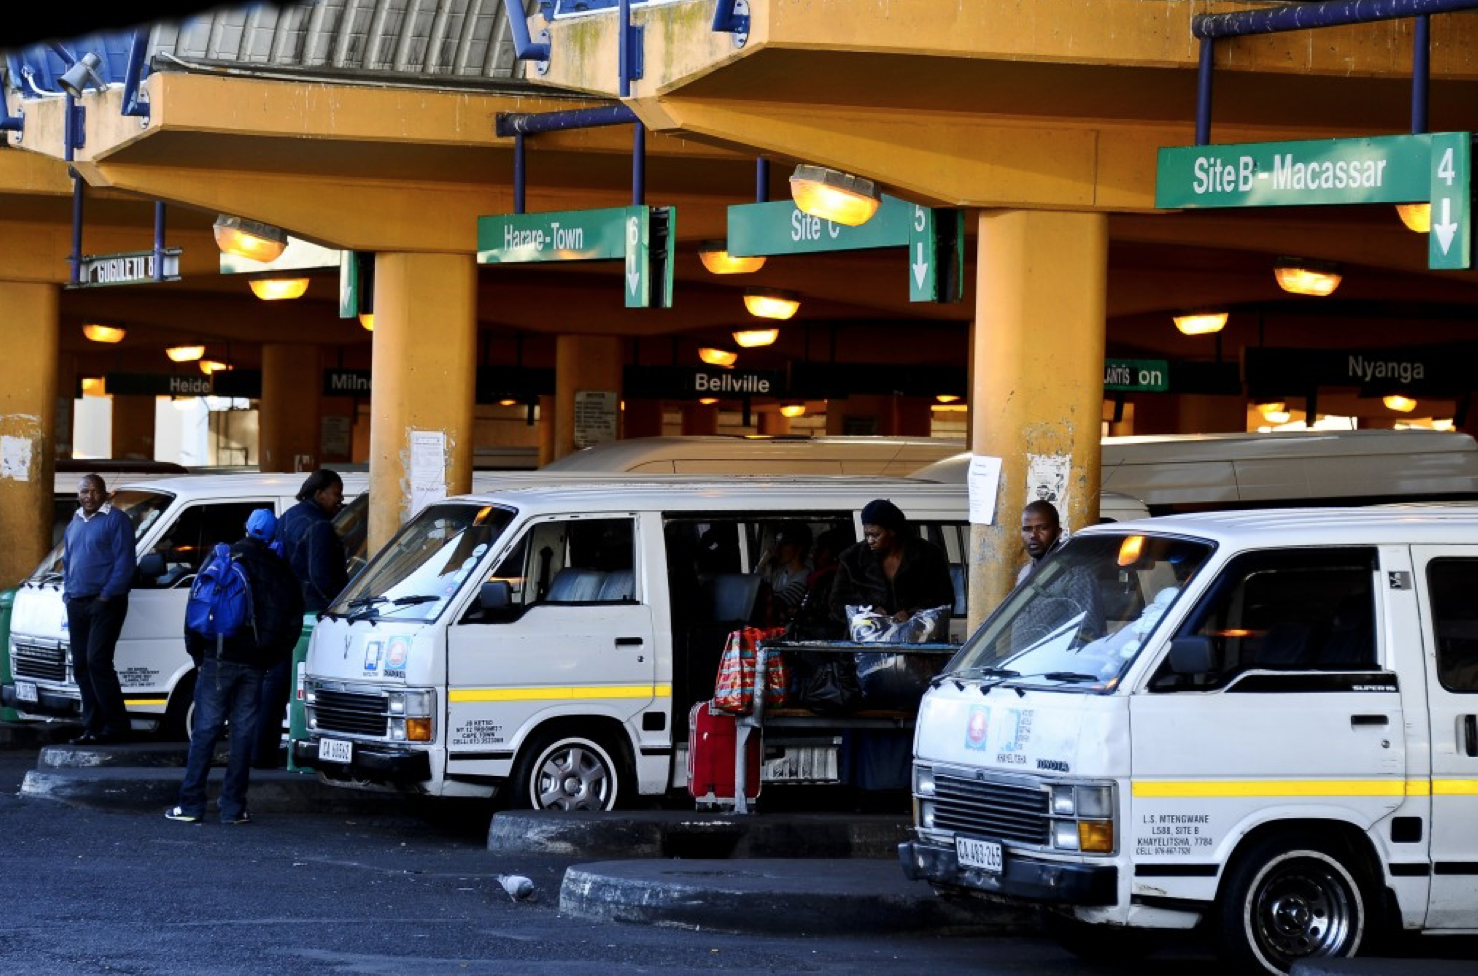 A minibus taxi rank in Cape Town, South Africa.  (Photo by 91.3 FM, The Voice of the Cape)